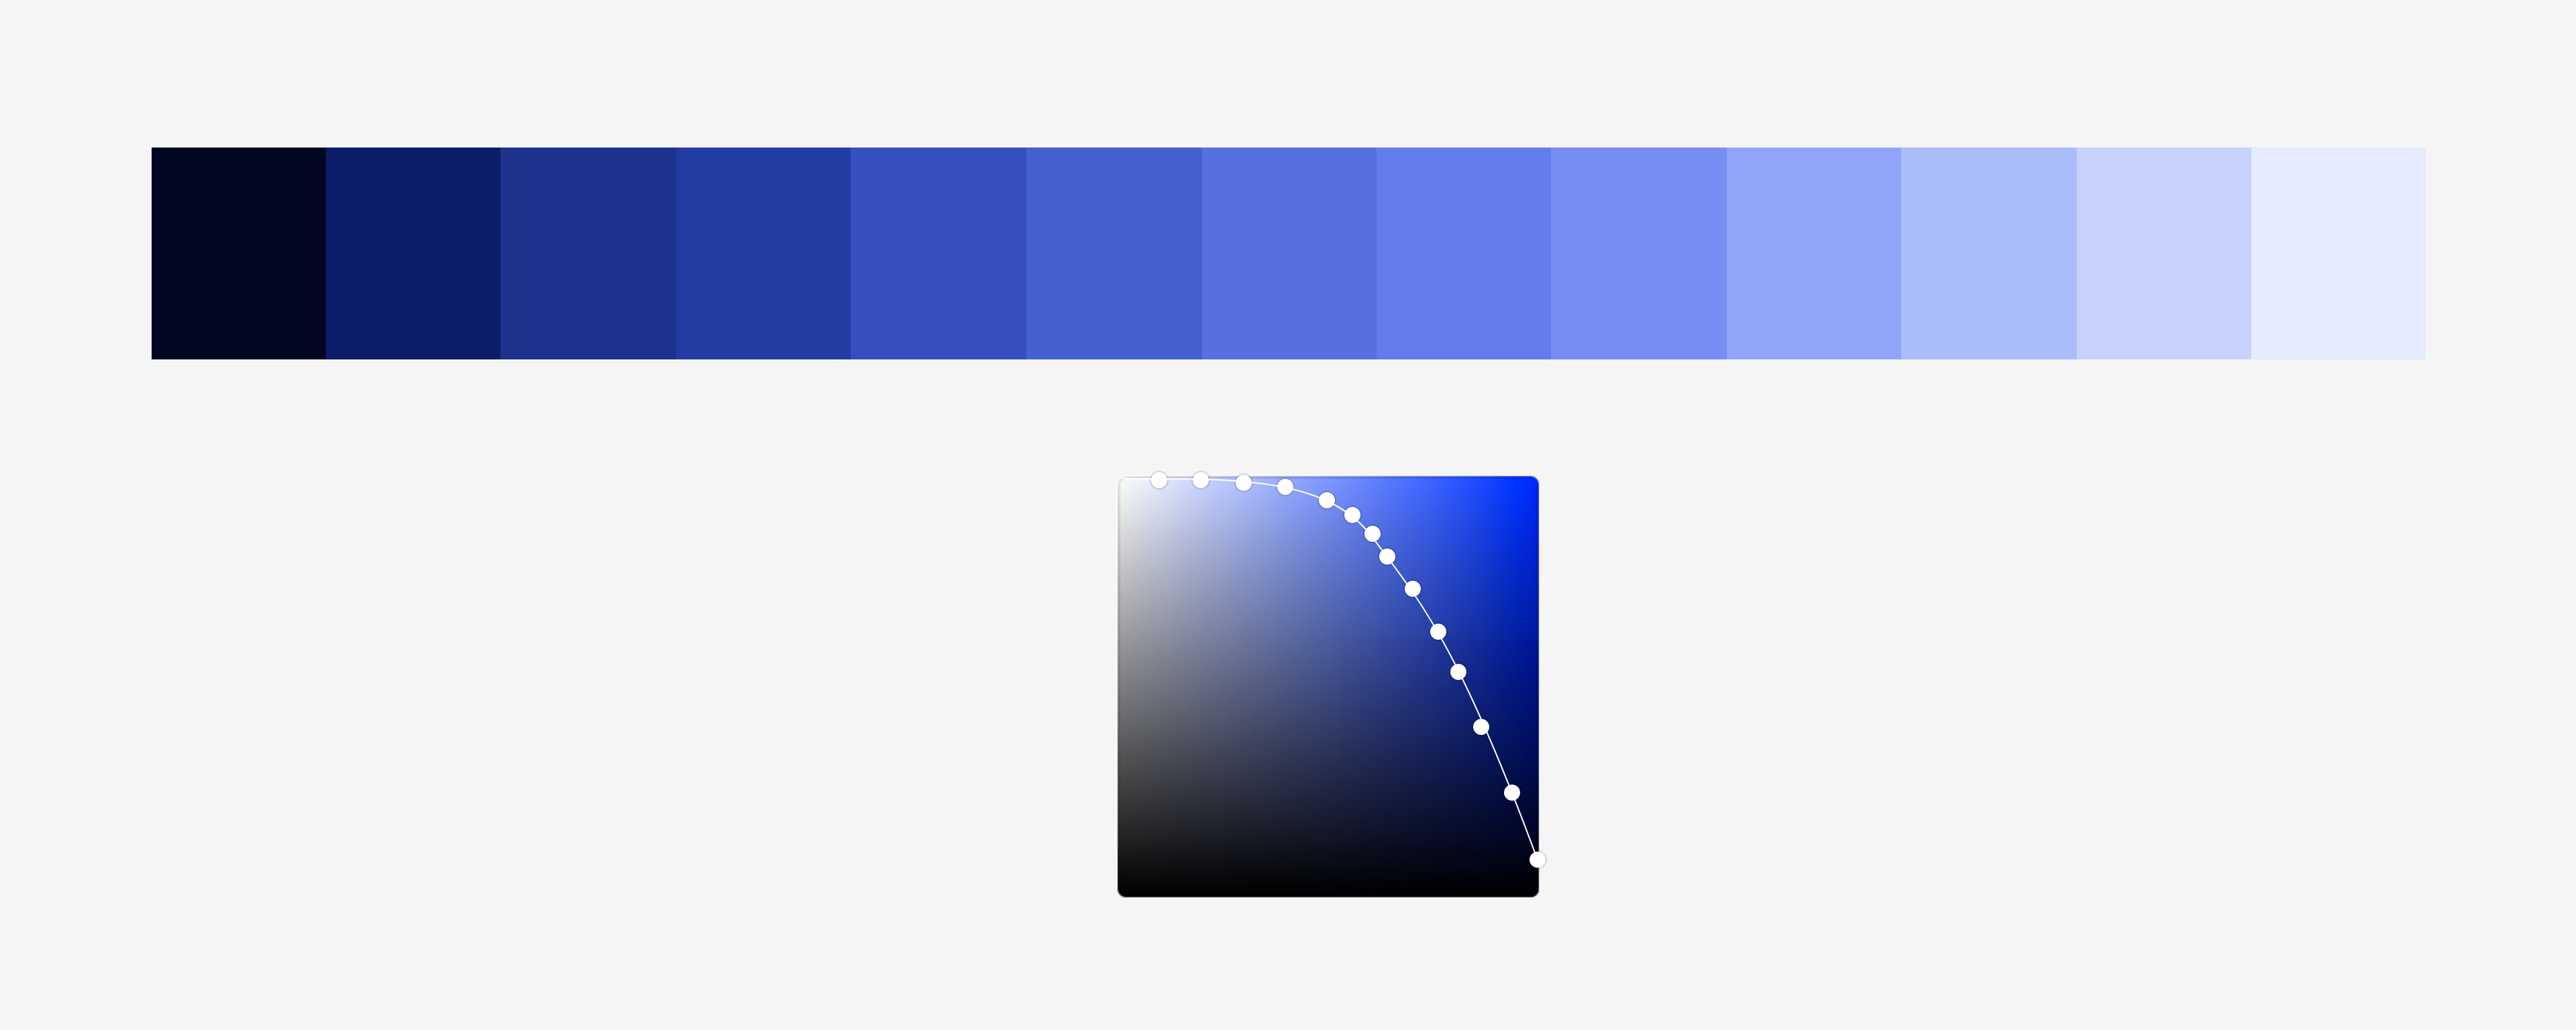 13 blue squares from dark to light values. Below is an HSV color area diagram with each color plotted by a white dot.